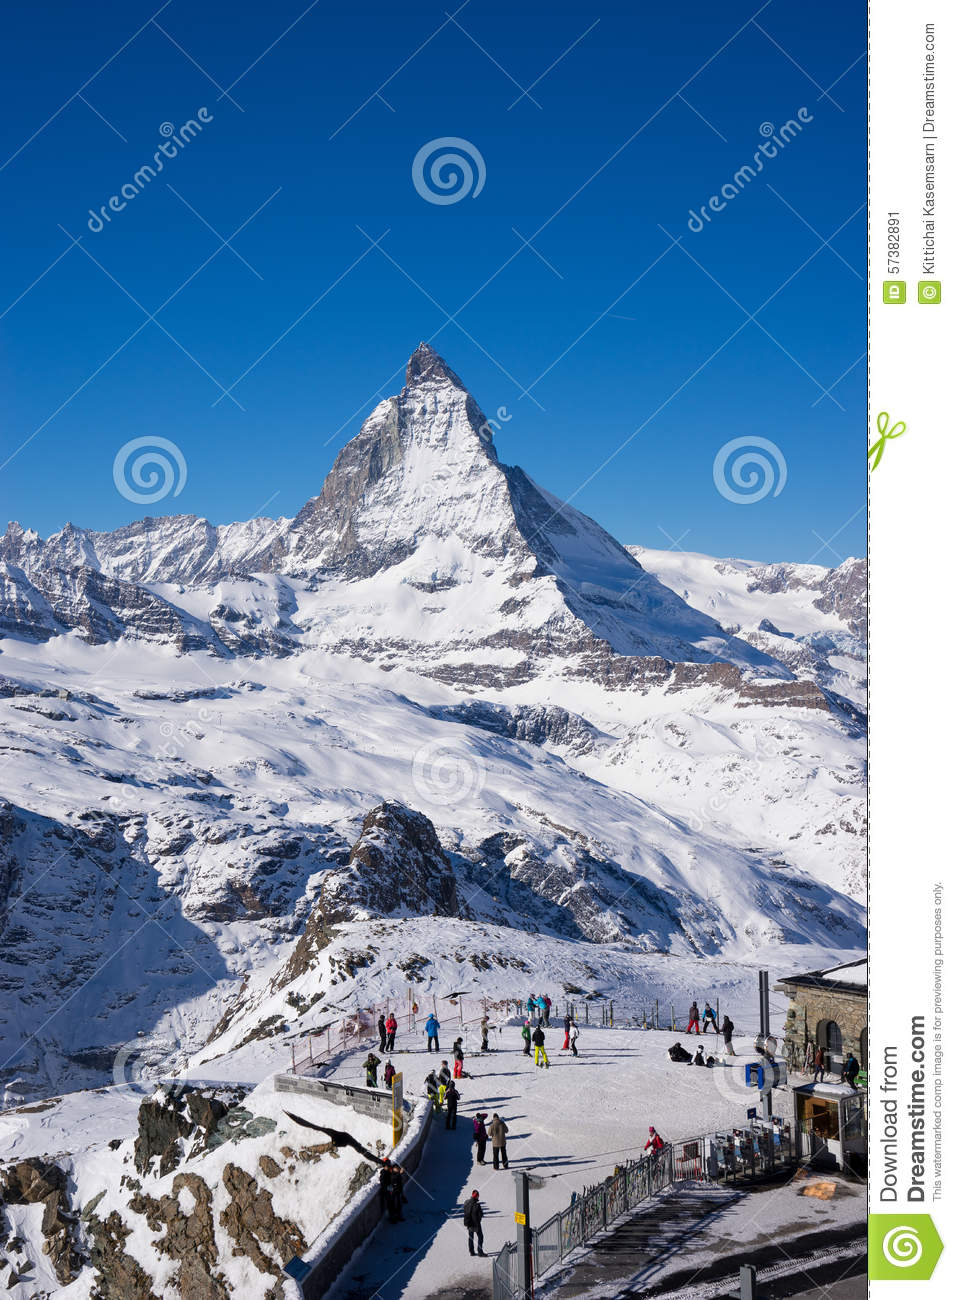 Zermatt Switzerland Matterhorn Ski Resort Stock Image Image of